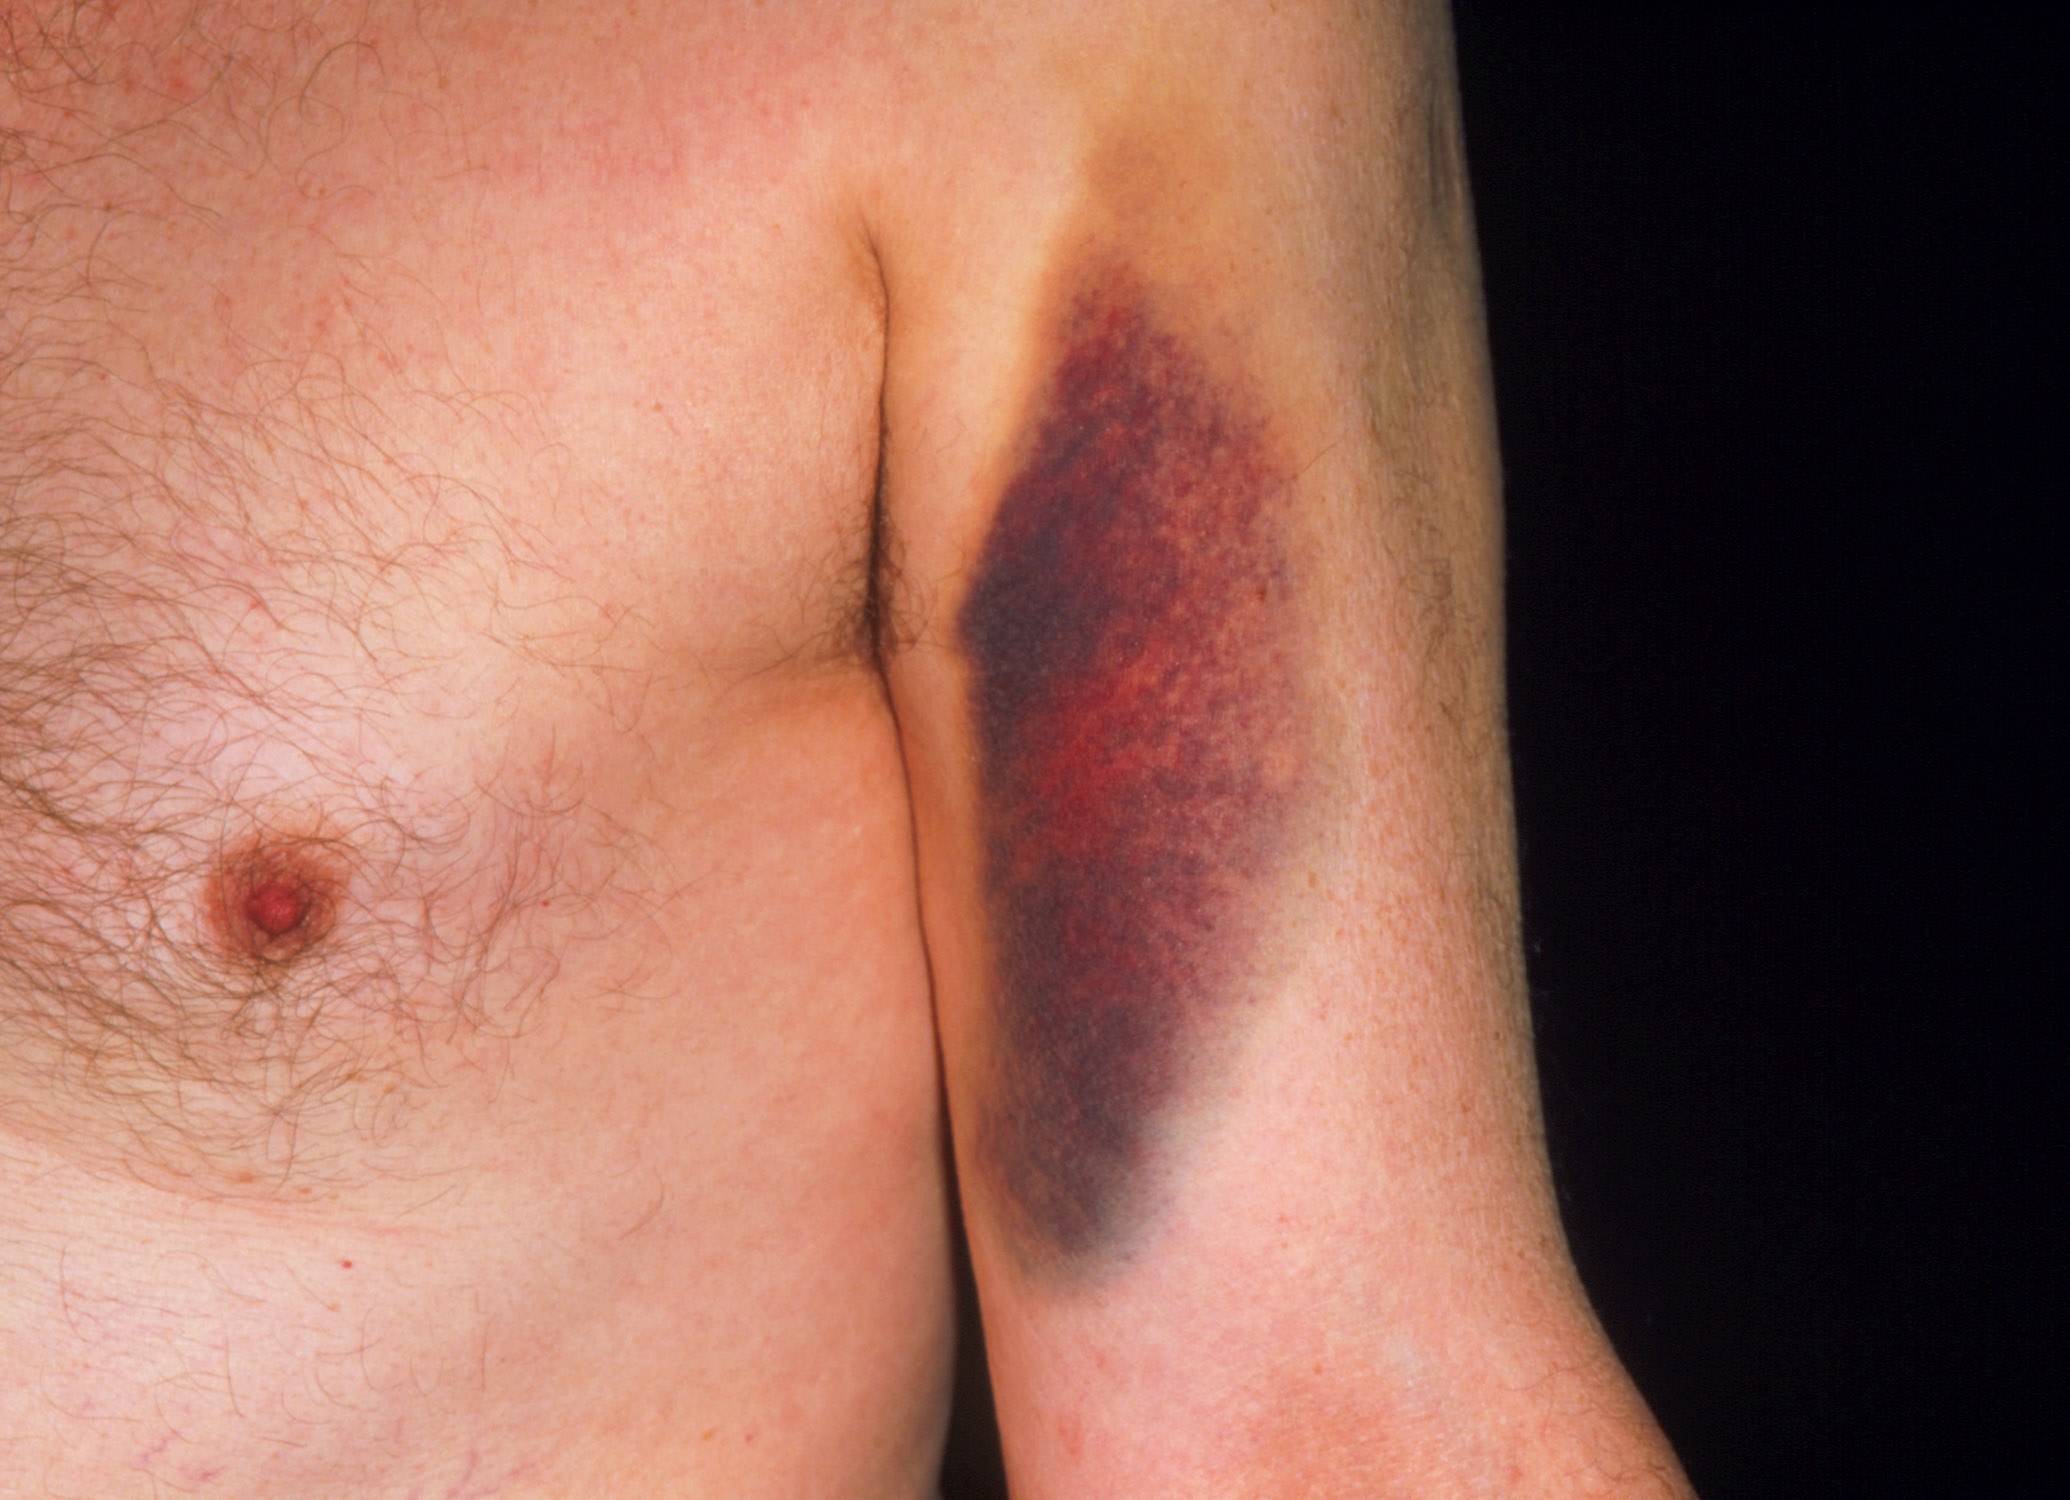 Bruising caused by warfarin. Among older adults complications from warfarin use cause the most drug-related visits to the emergency department.